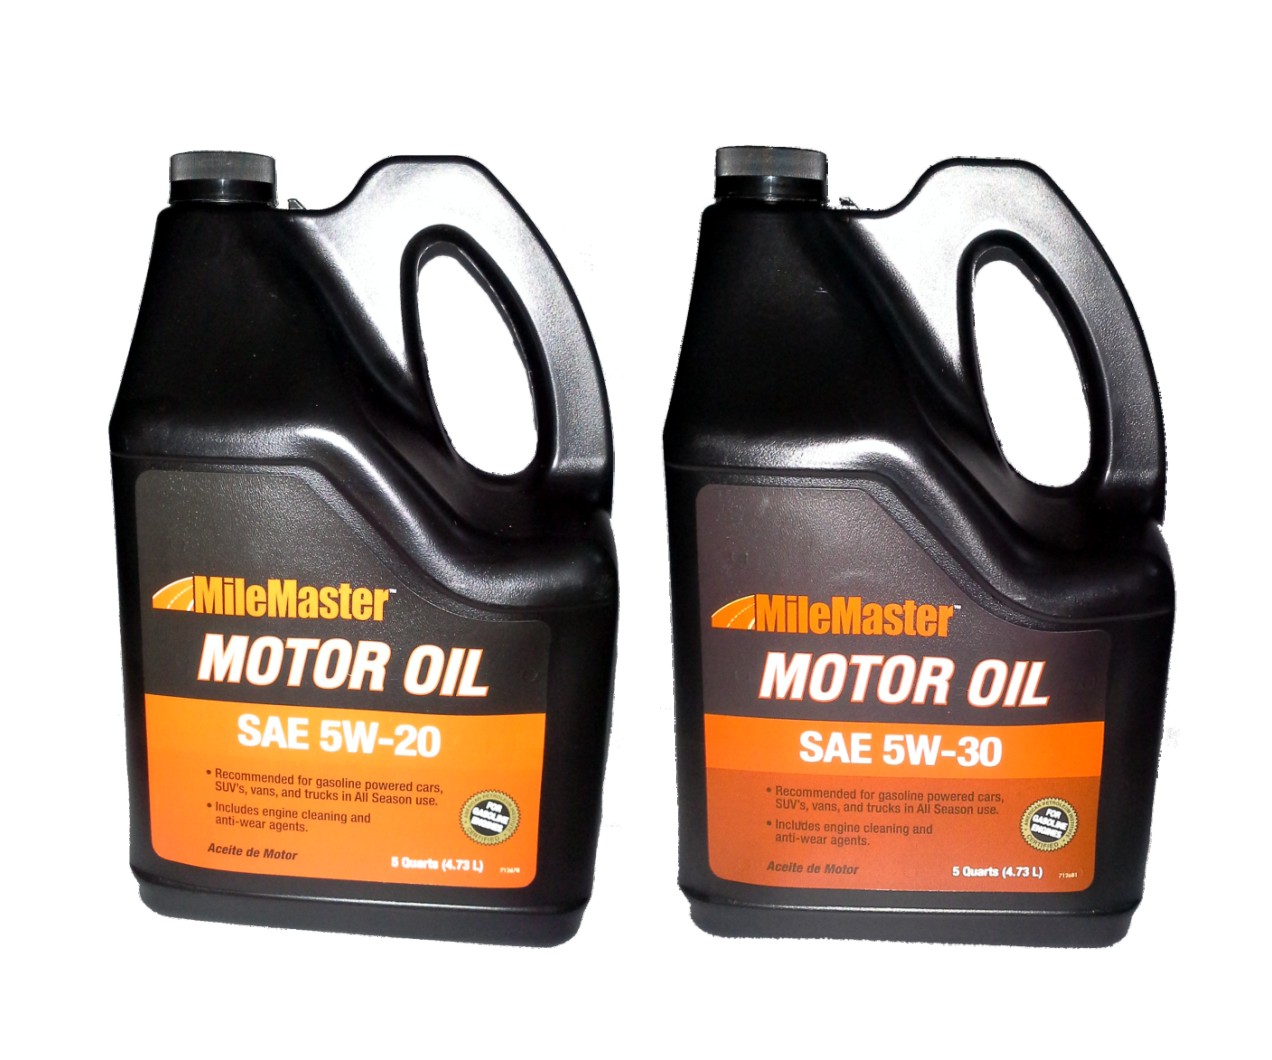 Engine Oil Autos Nigeria